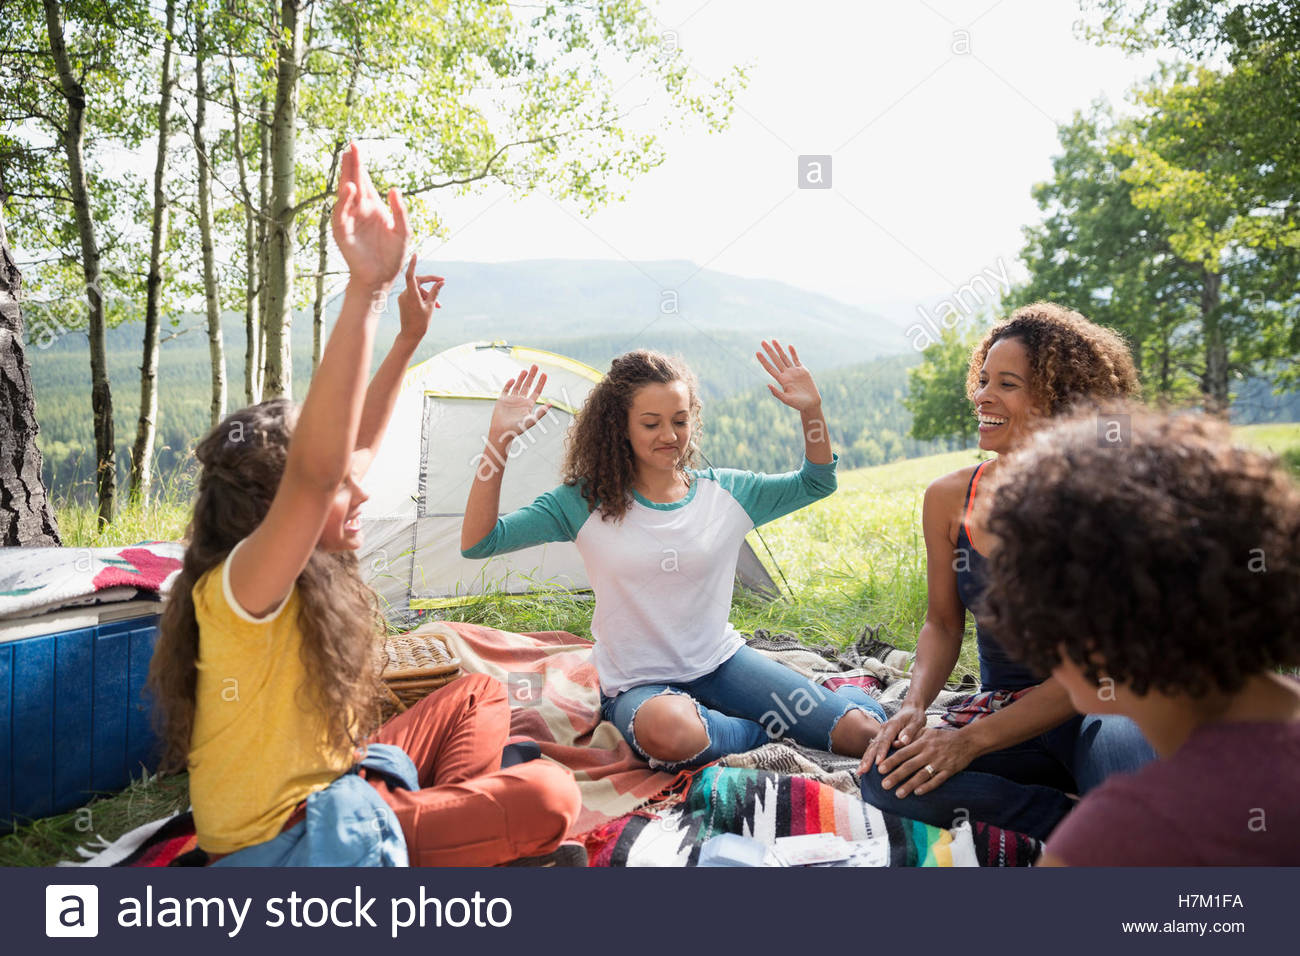 Mother and cheering daughters playing game at rural campsite - Stock Image